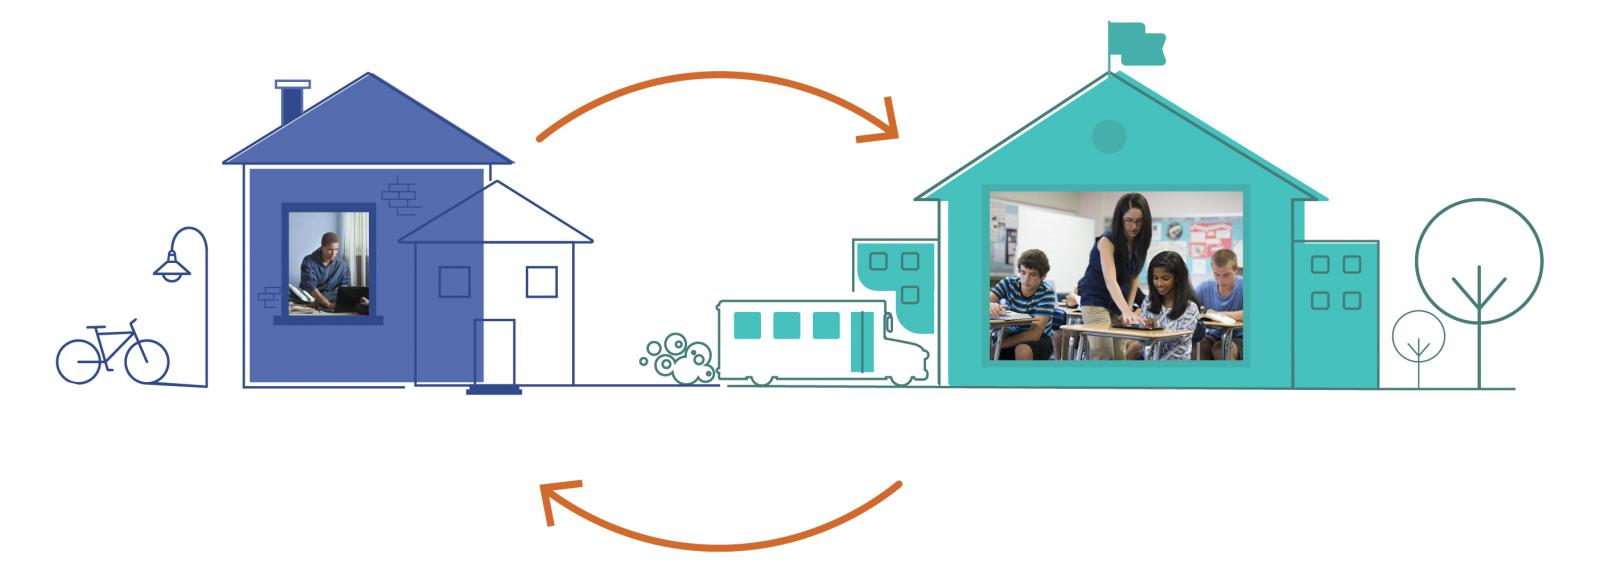 Illustration showing the flexibility to move from virtual school to hybrid to in-classroom program.